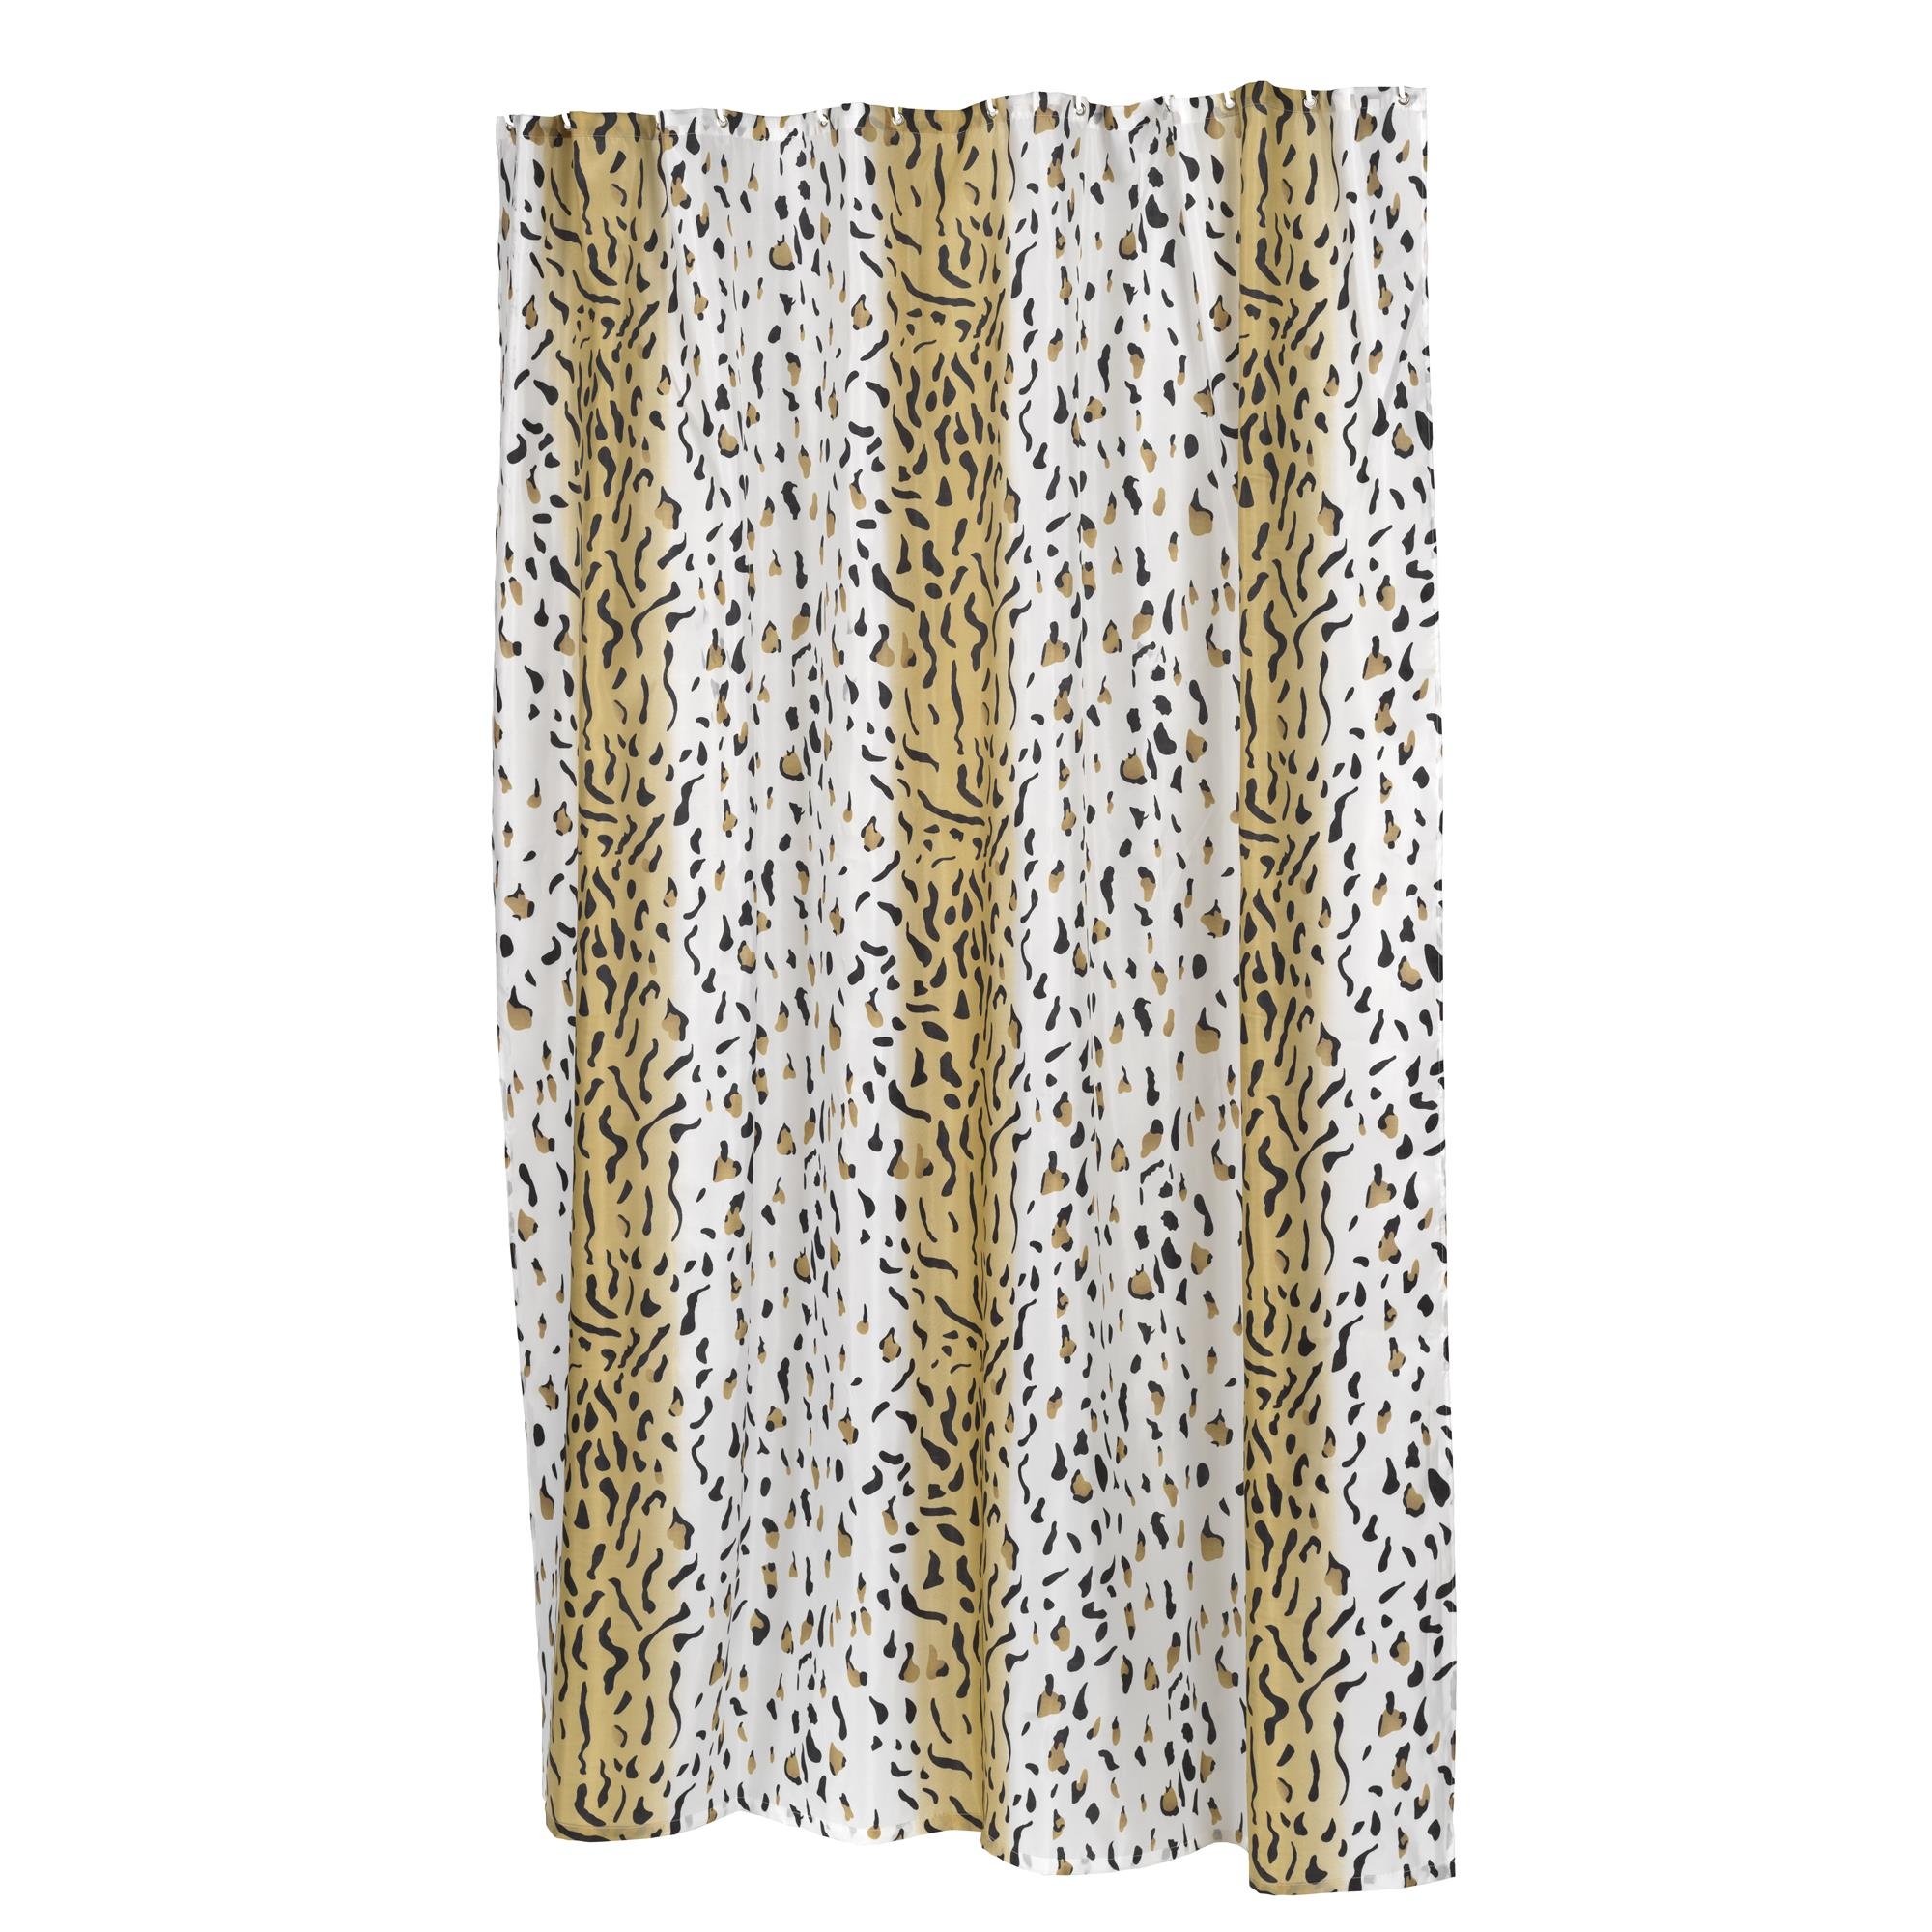 Carnation Home Extra Long Hailey Fabric Shower Curtain 71821010059